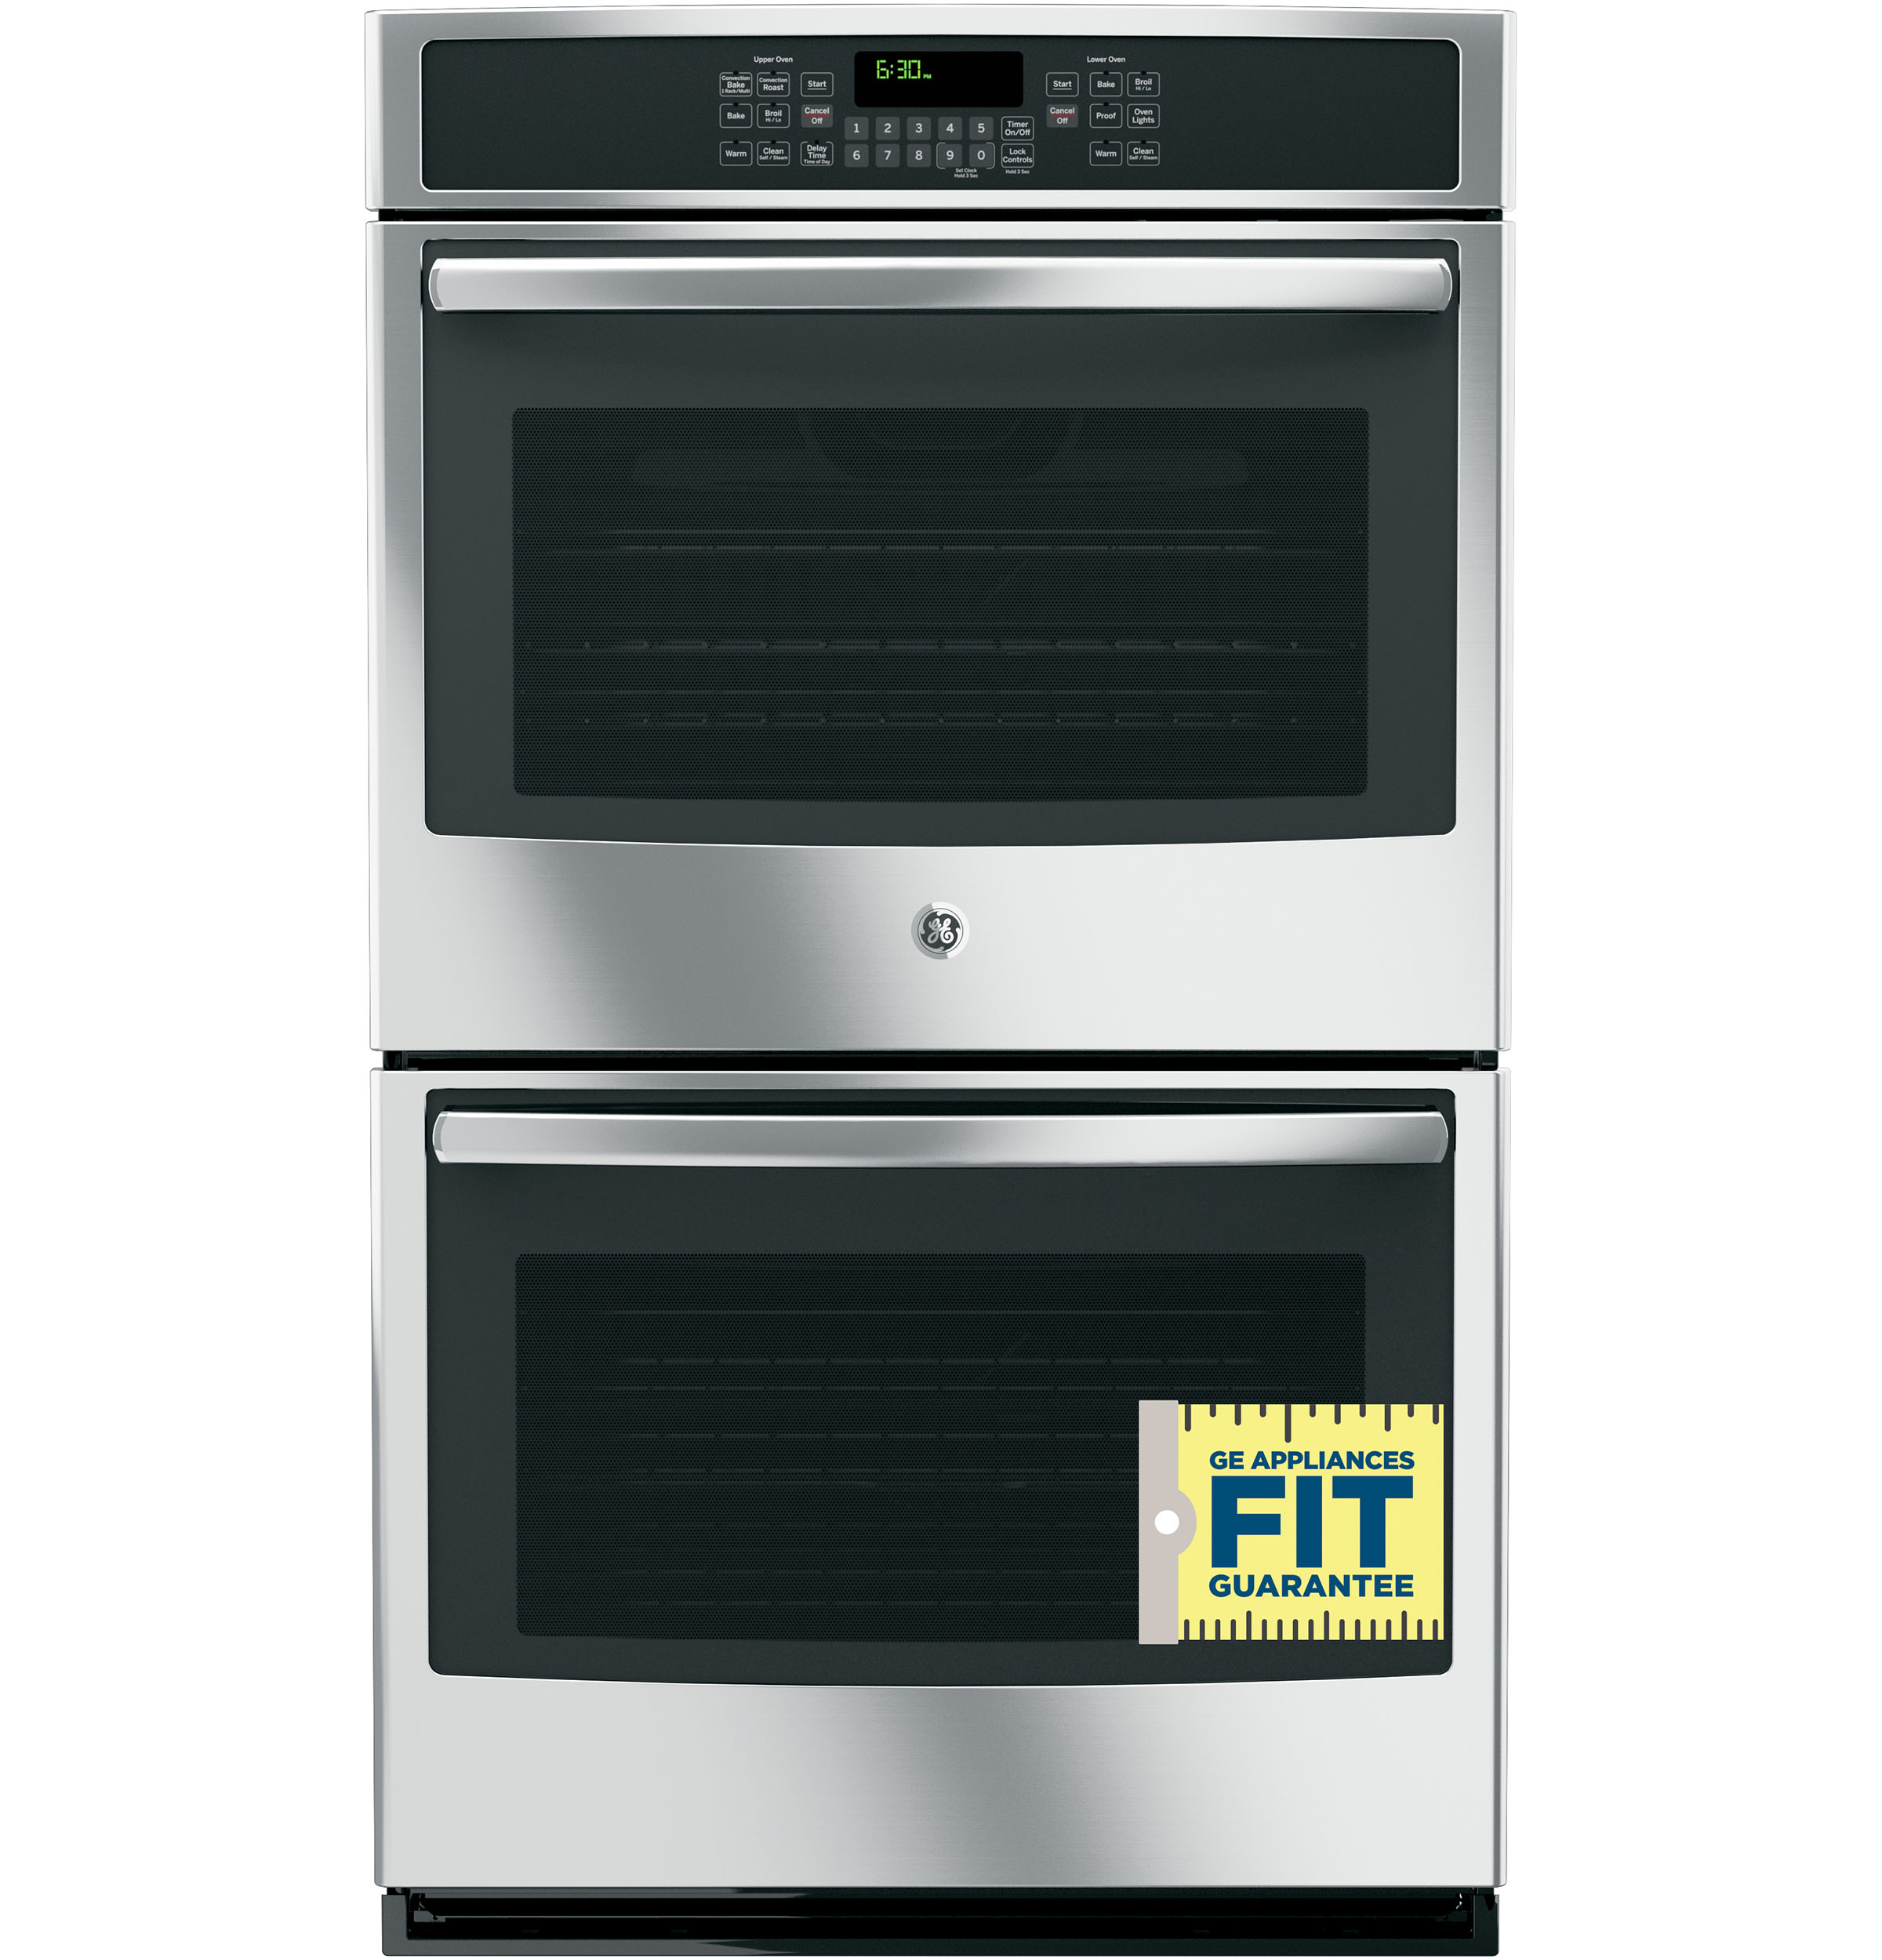 ge® 30 built in double wall oven convection jt5500sfss product image product image